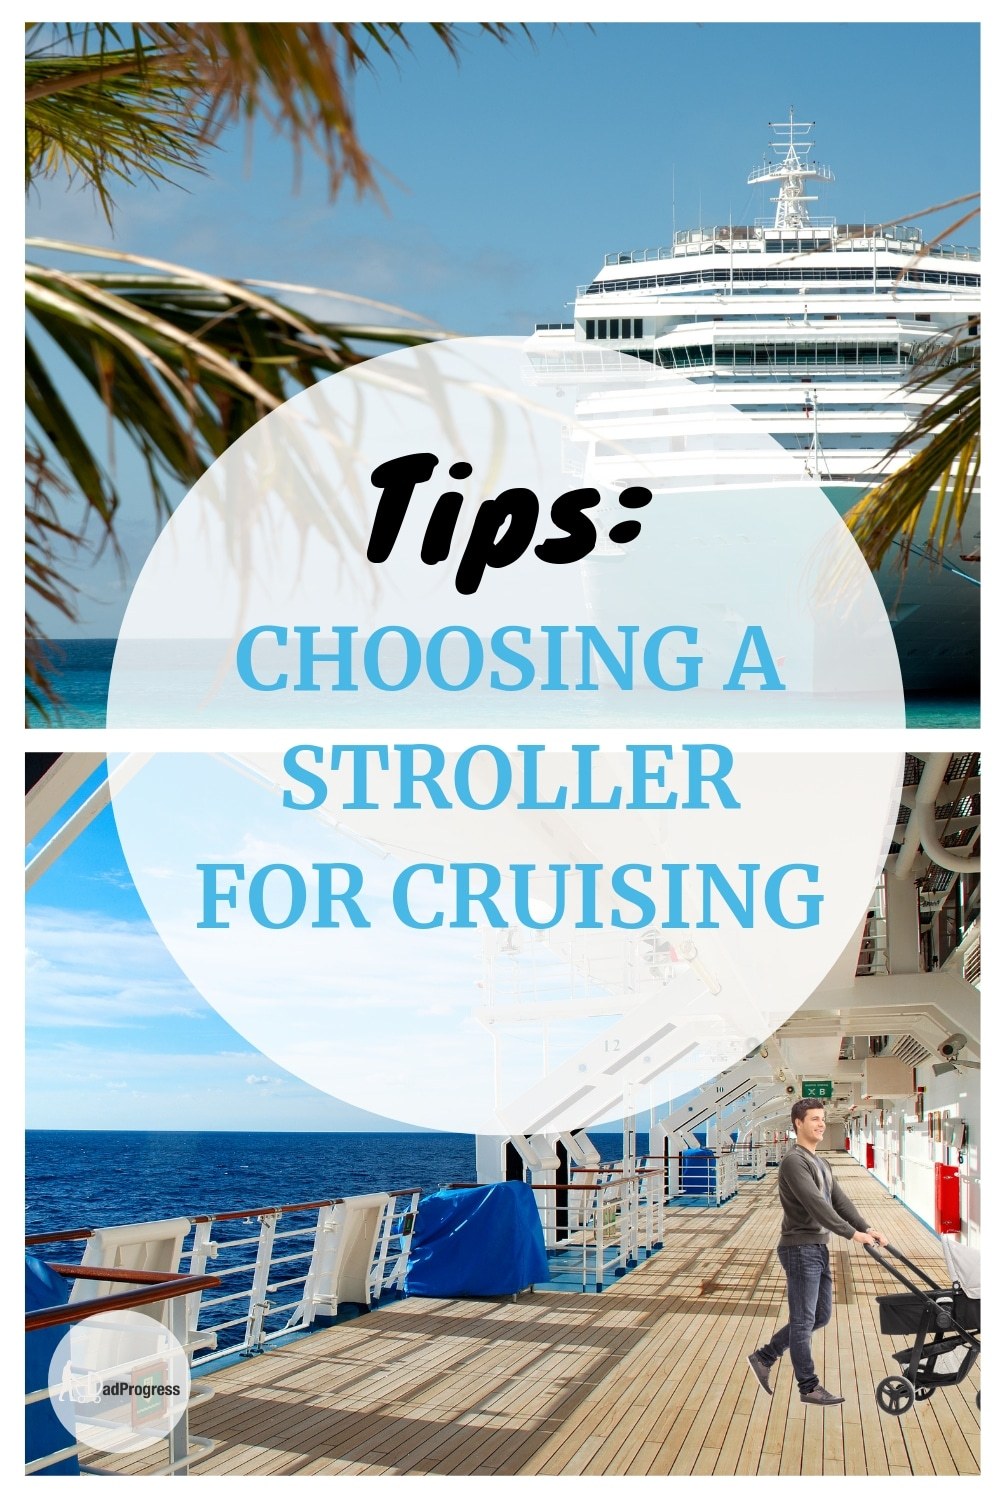 If you're looking for toddler cruise tips, then check out my guide on best strollers for family travel when going on a cruise vacation. The stroller should be easily to fold and lightweight, but there're more:)